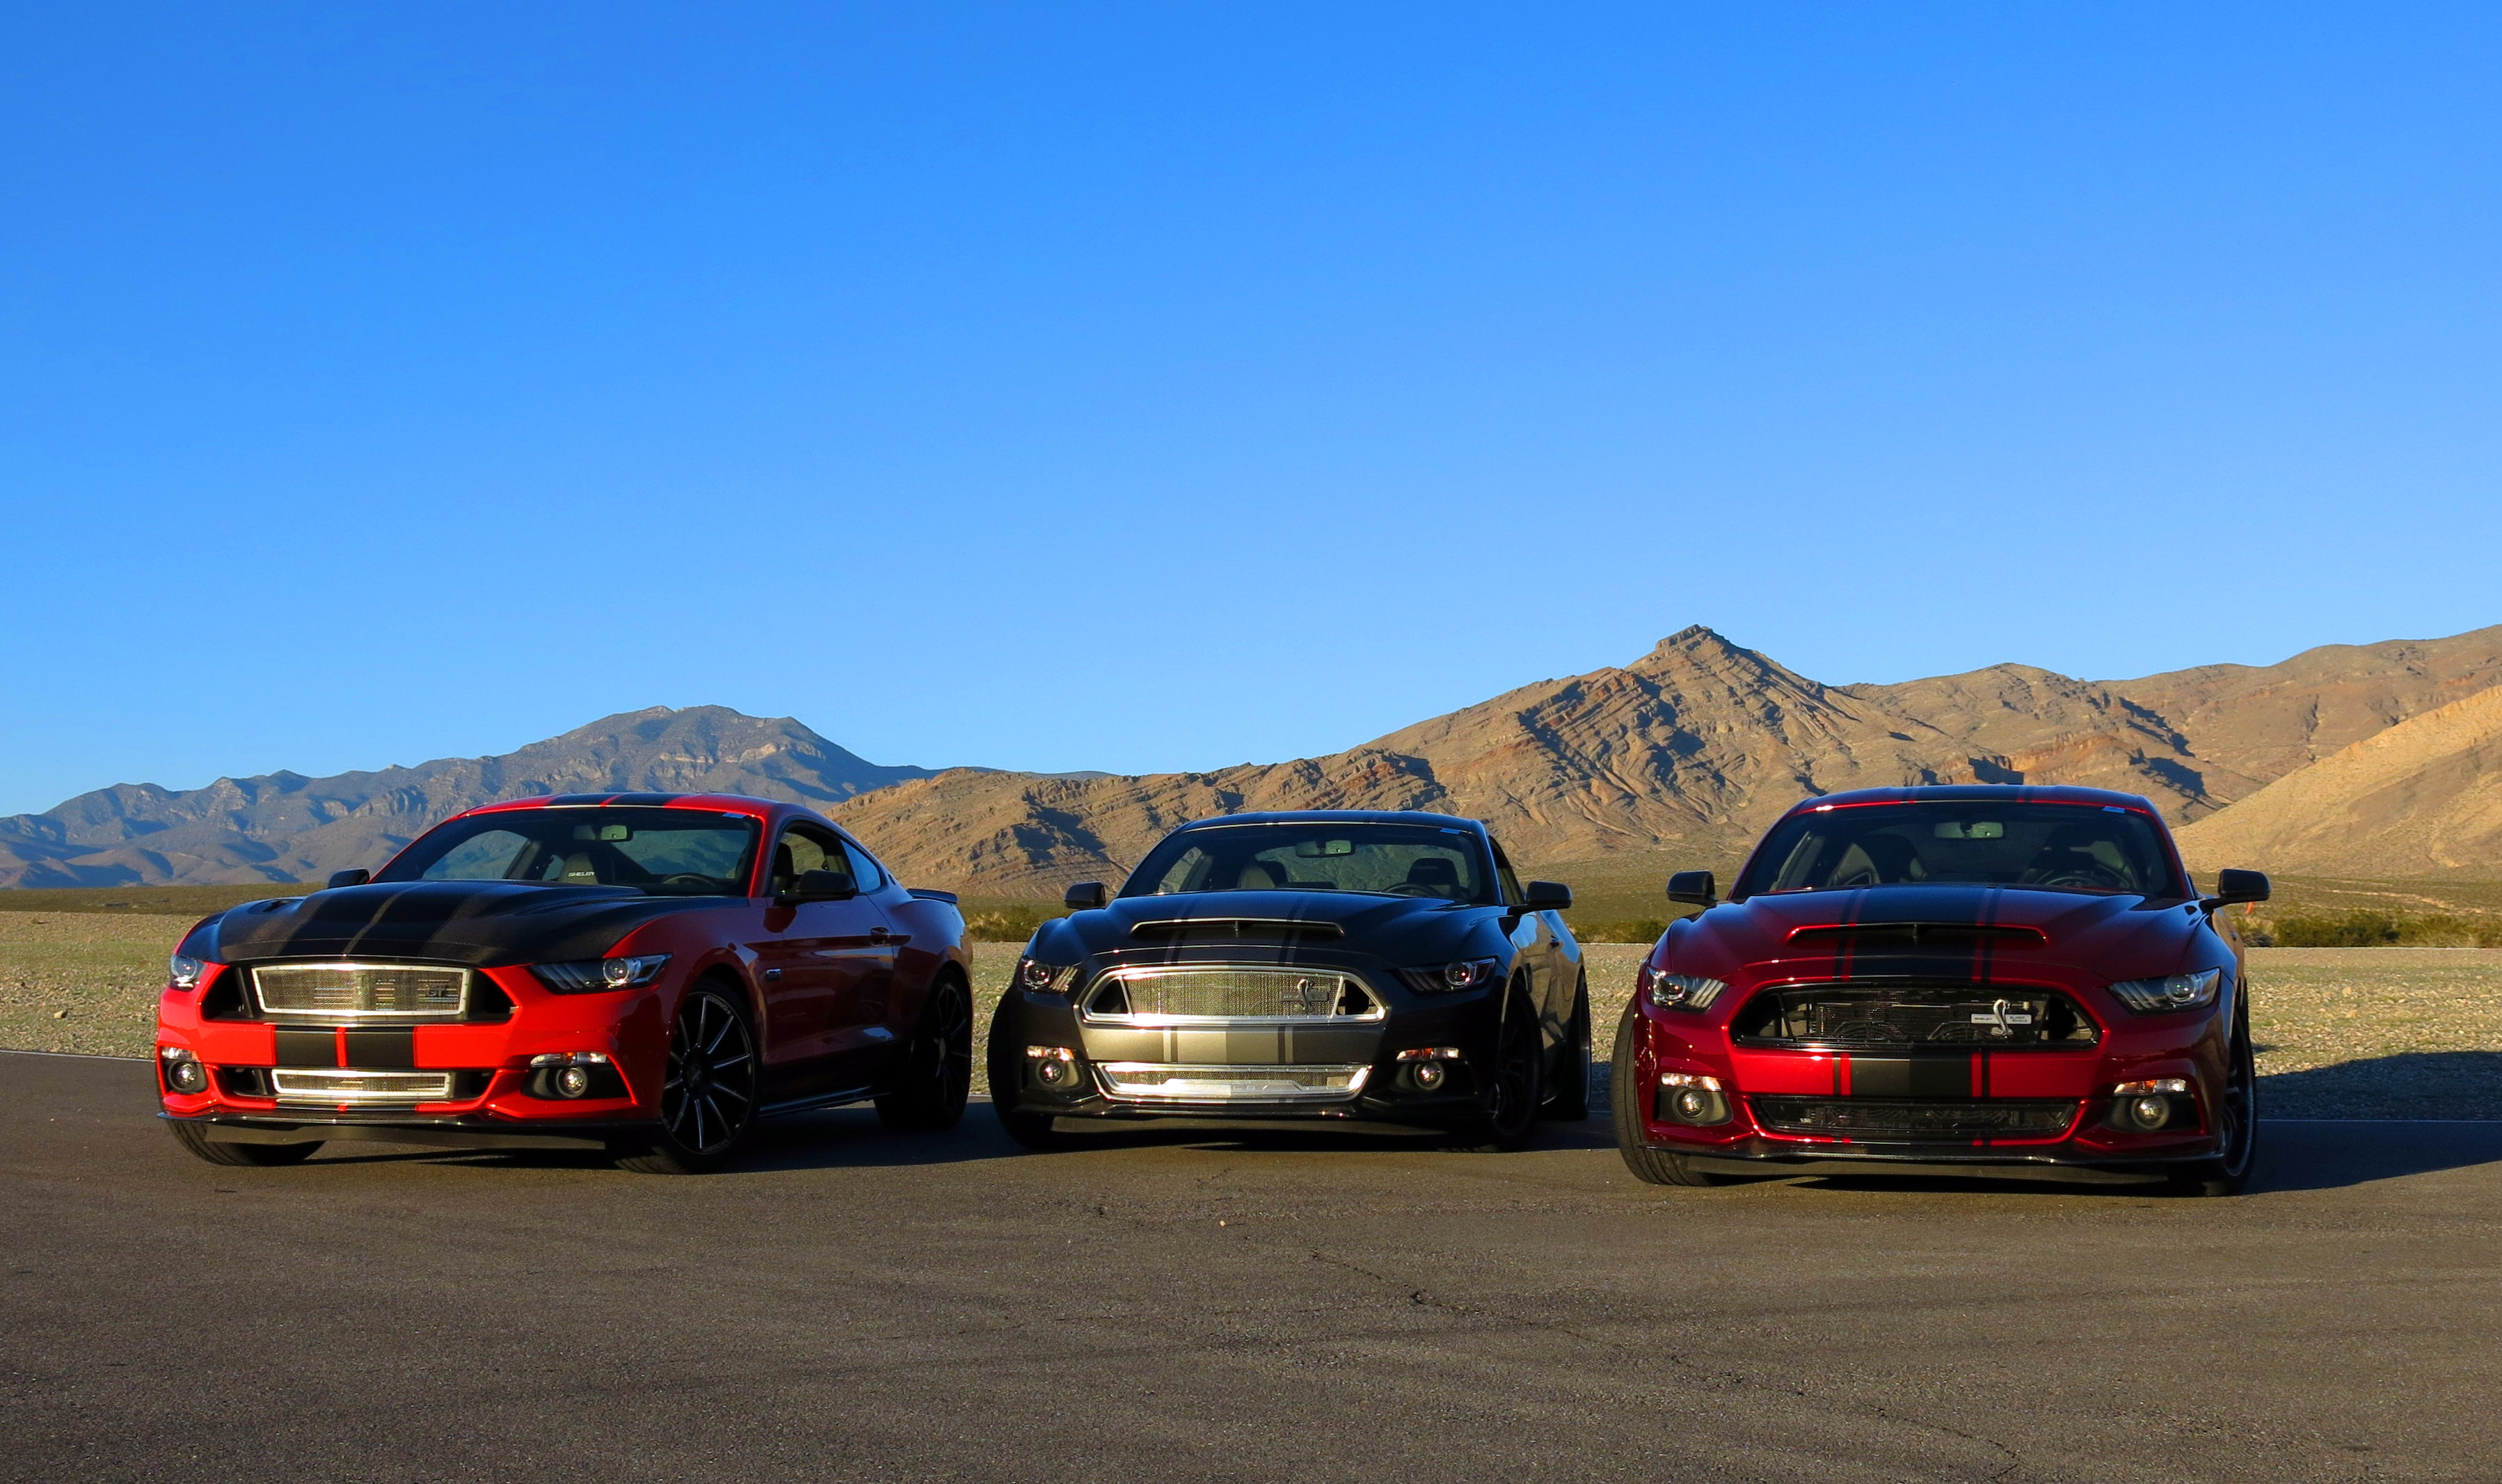 Ford F150 Shelby 2017 >> 2016 Shelby Super Snake Review – Charming the Right Serpent